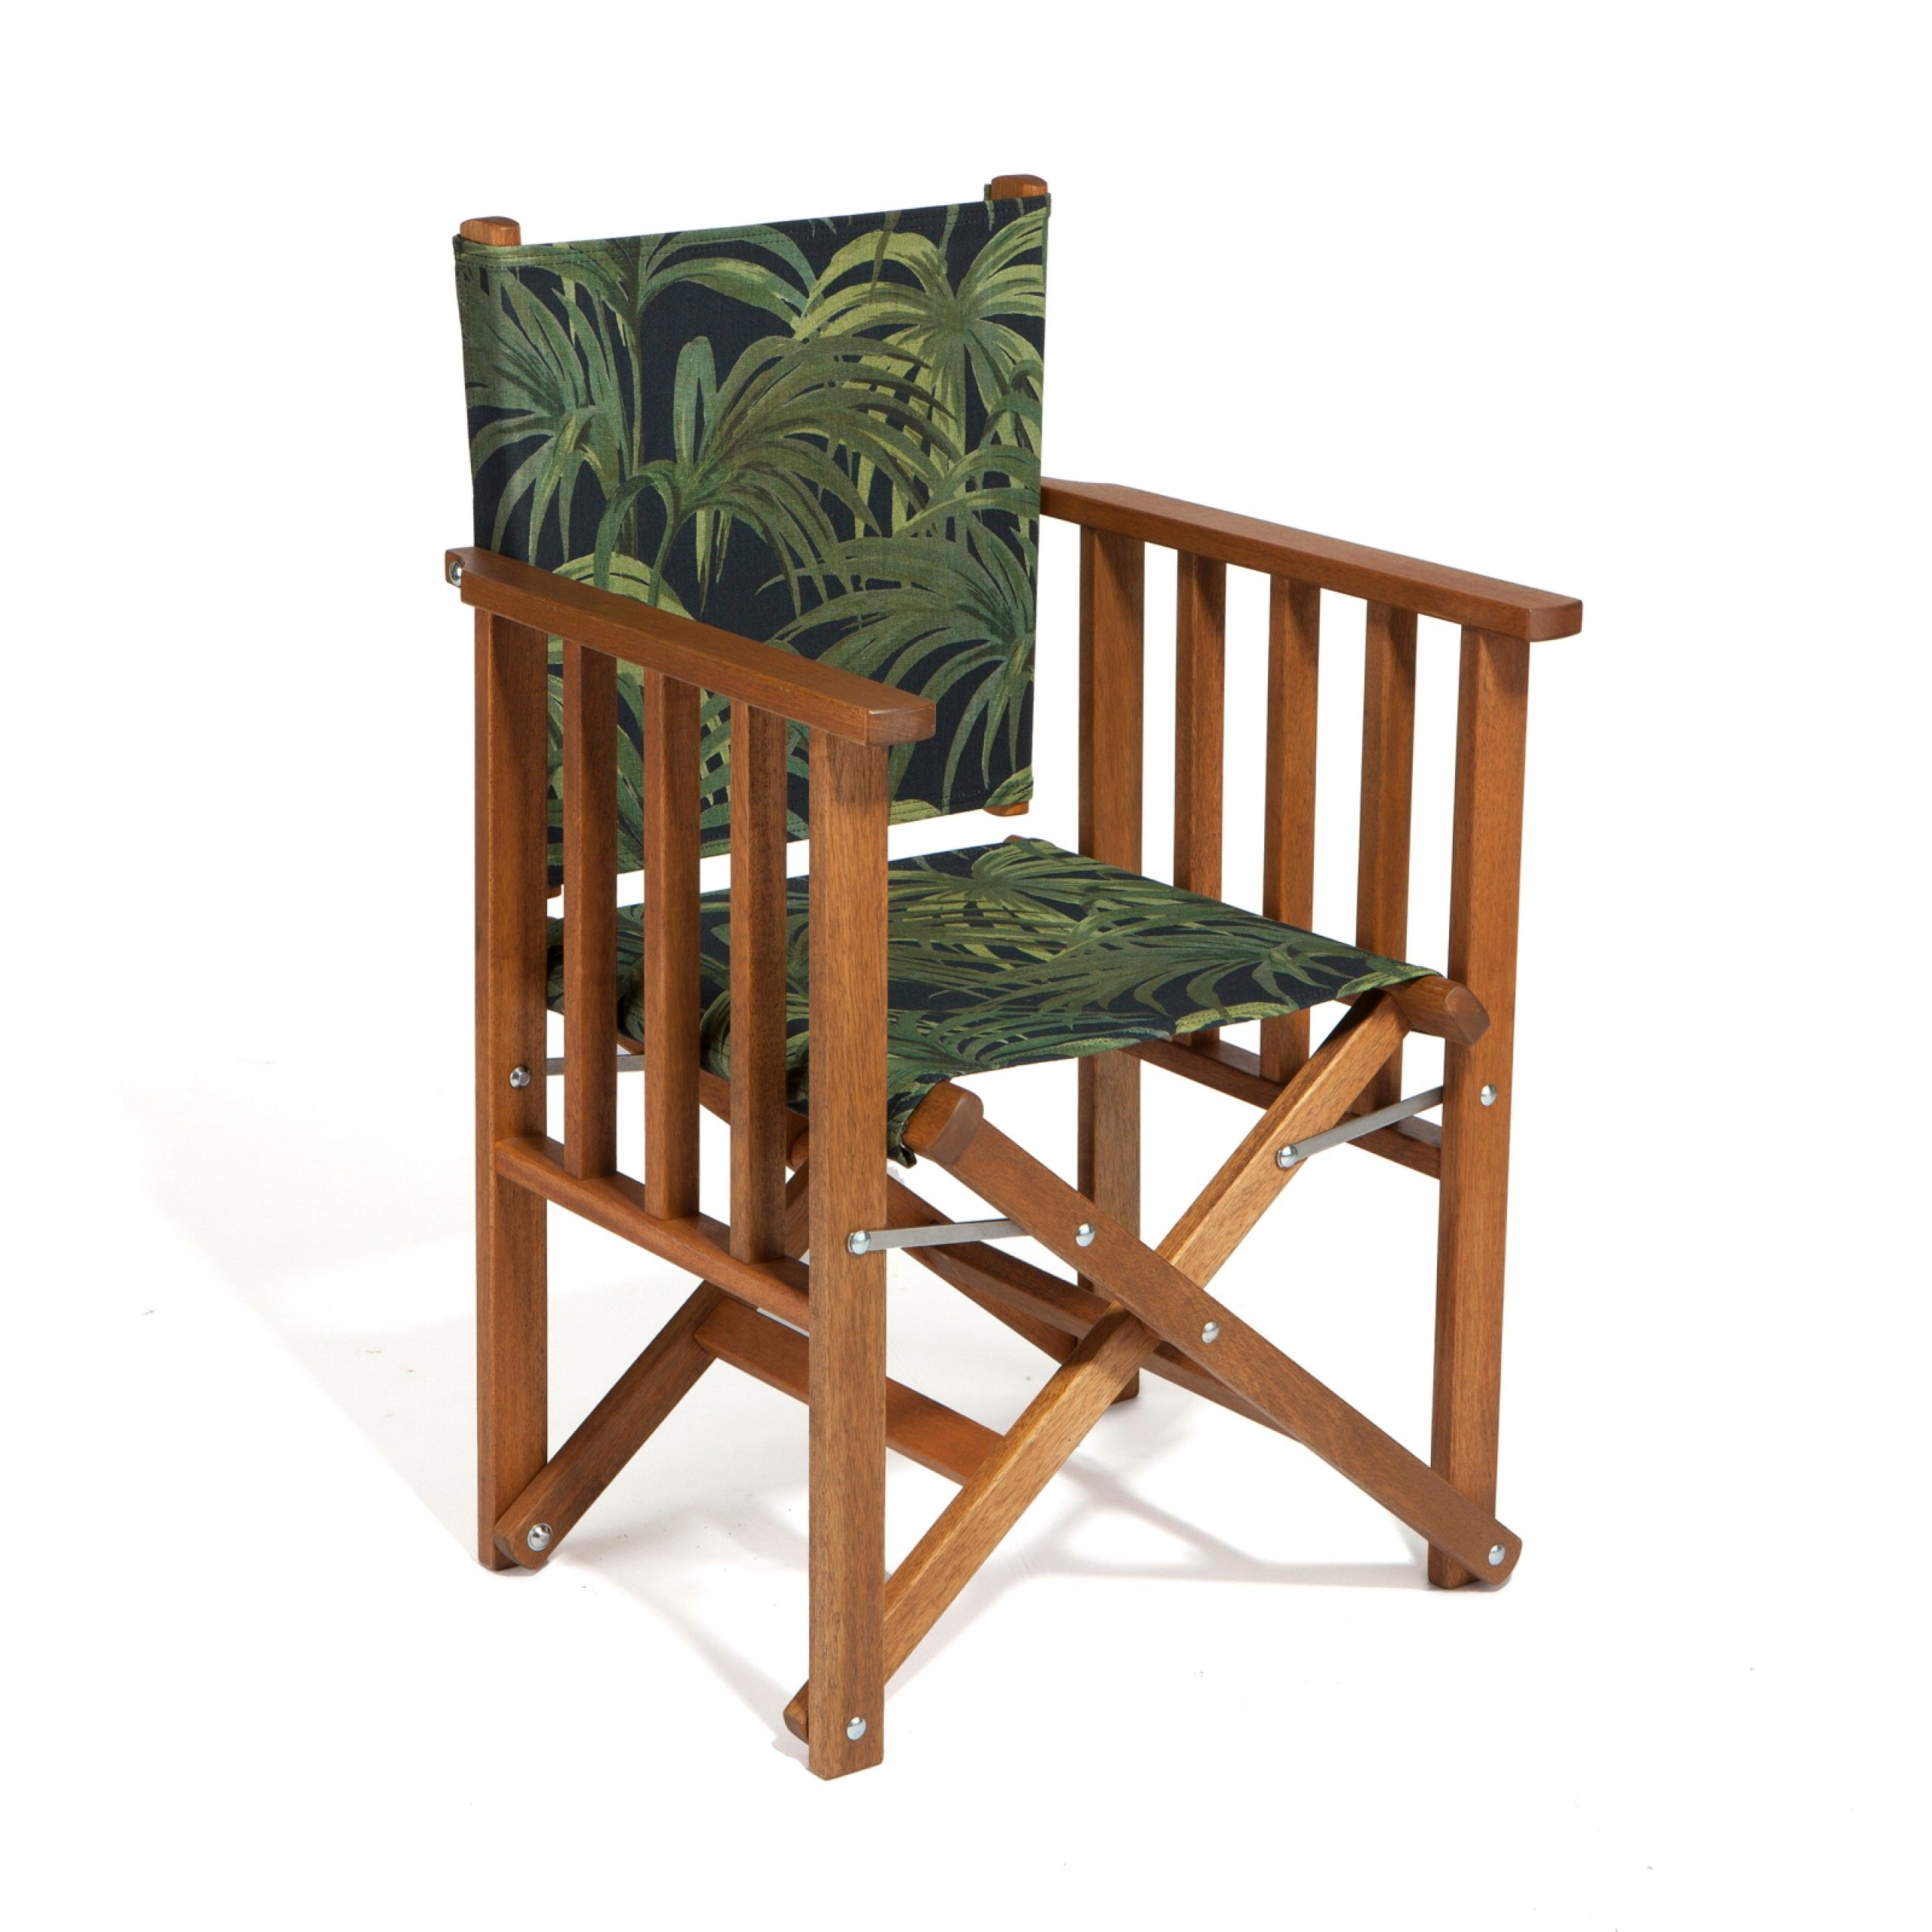 PALMERAL Tennis Deck Chair Midnight Green